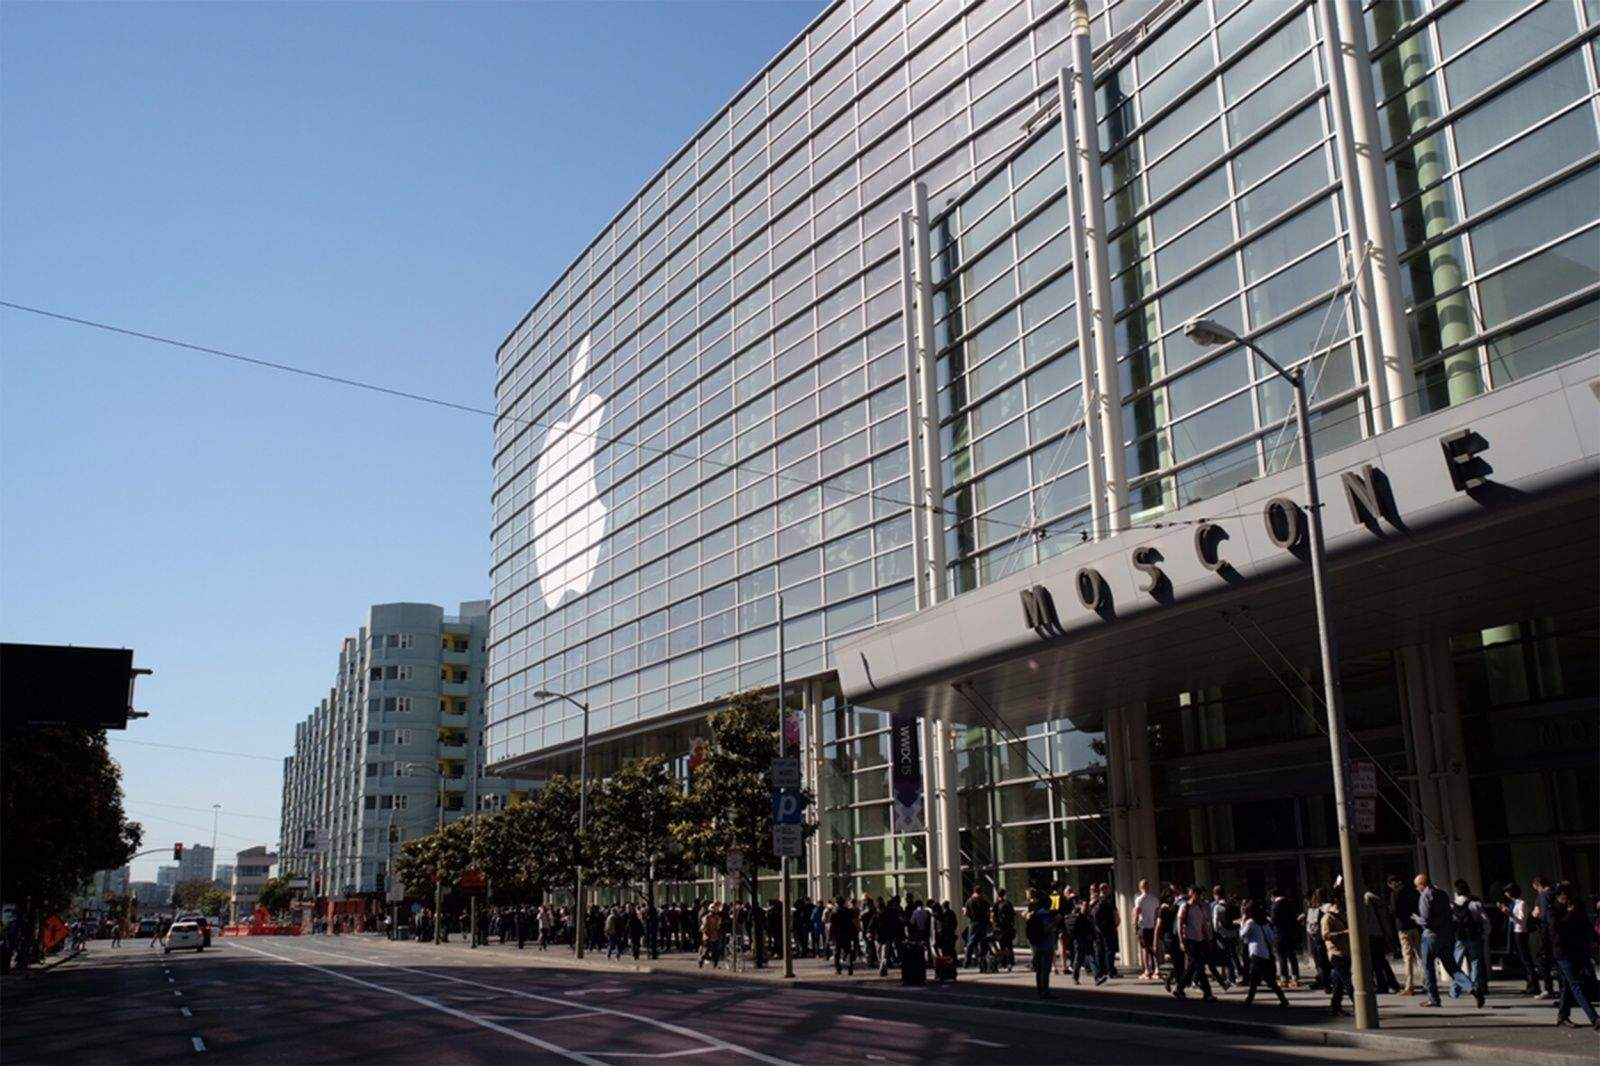 Will Apple hold WWDC on June 13 - 17 this year at the Moscone Center?